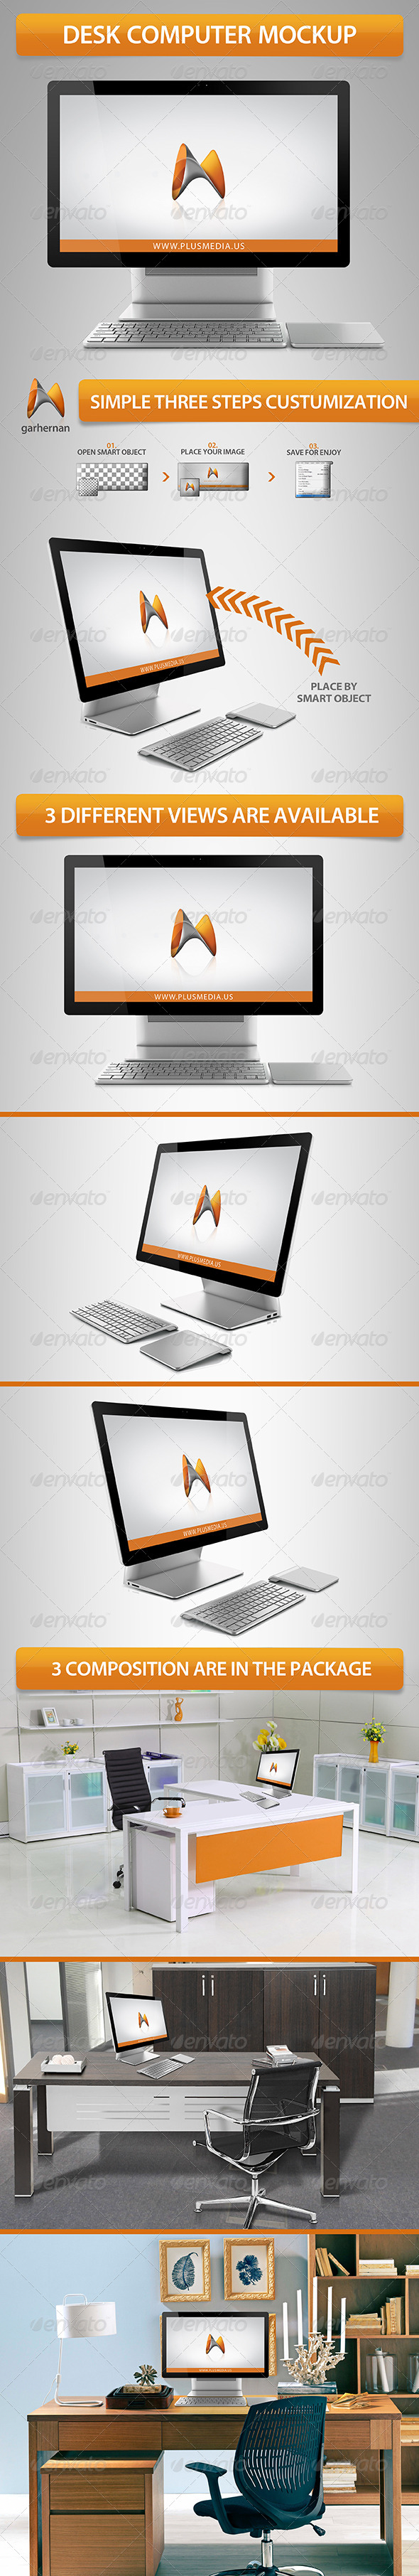 GraphicRiver Desk Computer Mockup 5518241